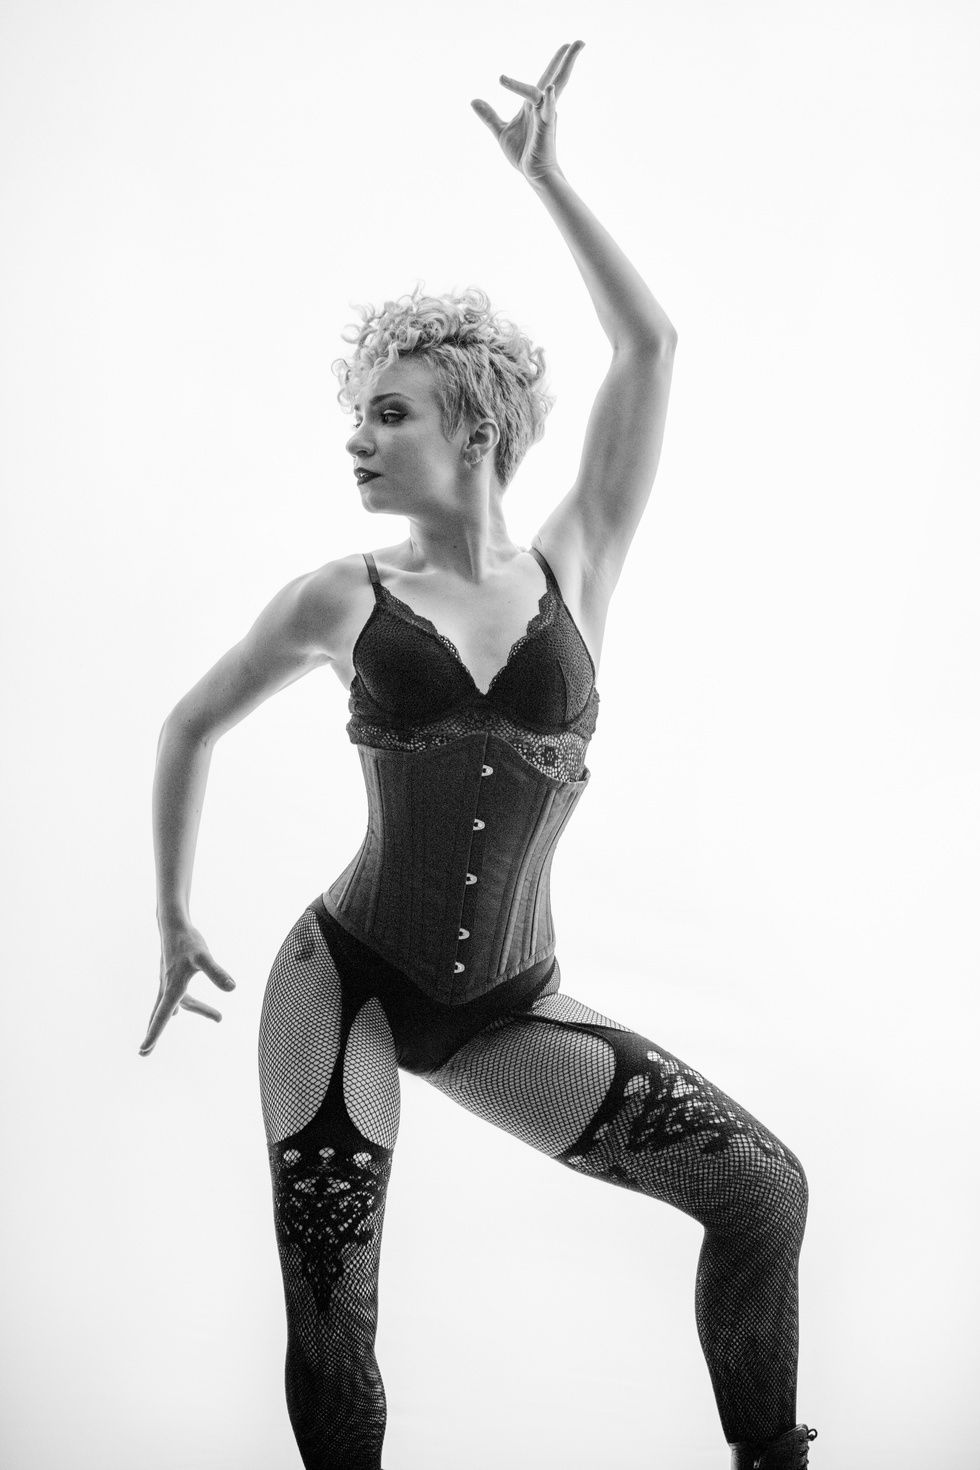 A black-and-white photo of Paloma Garcia-Lee posing in fishnets, lingerie and a corset. One arm is energetically held above her head.